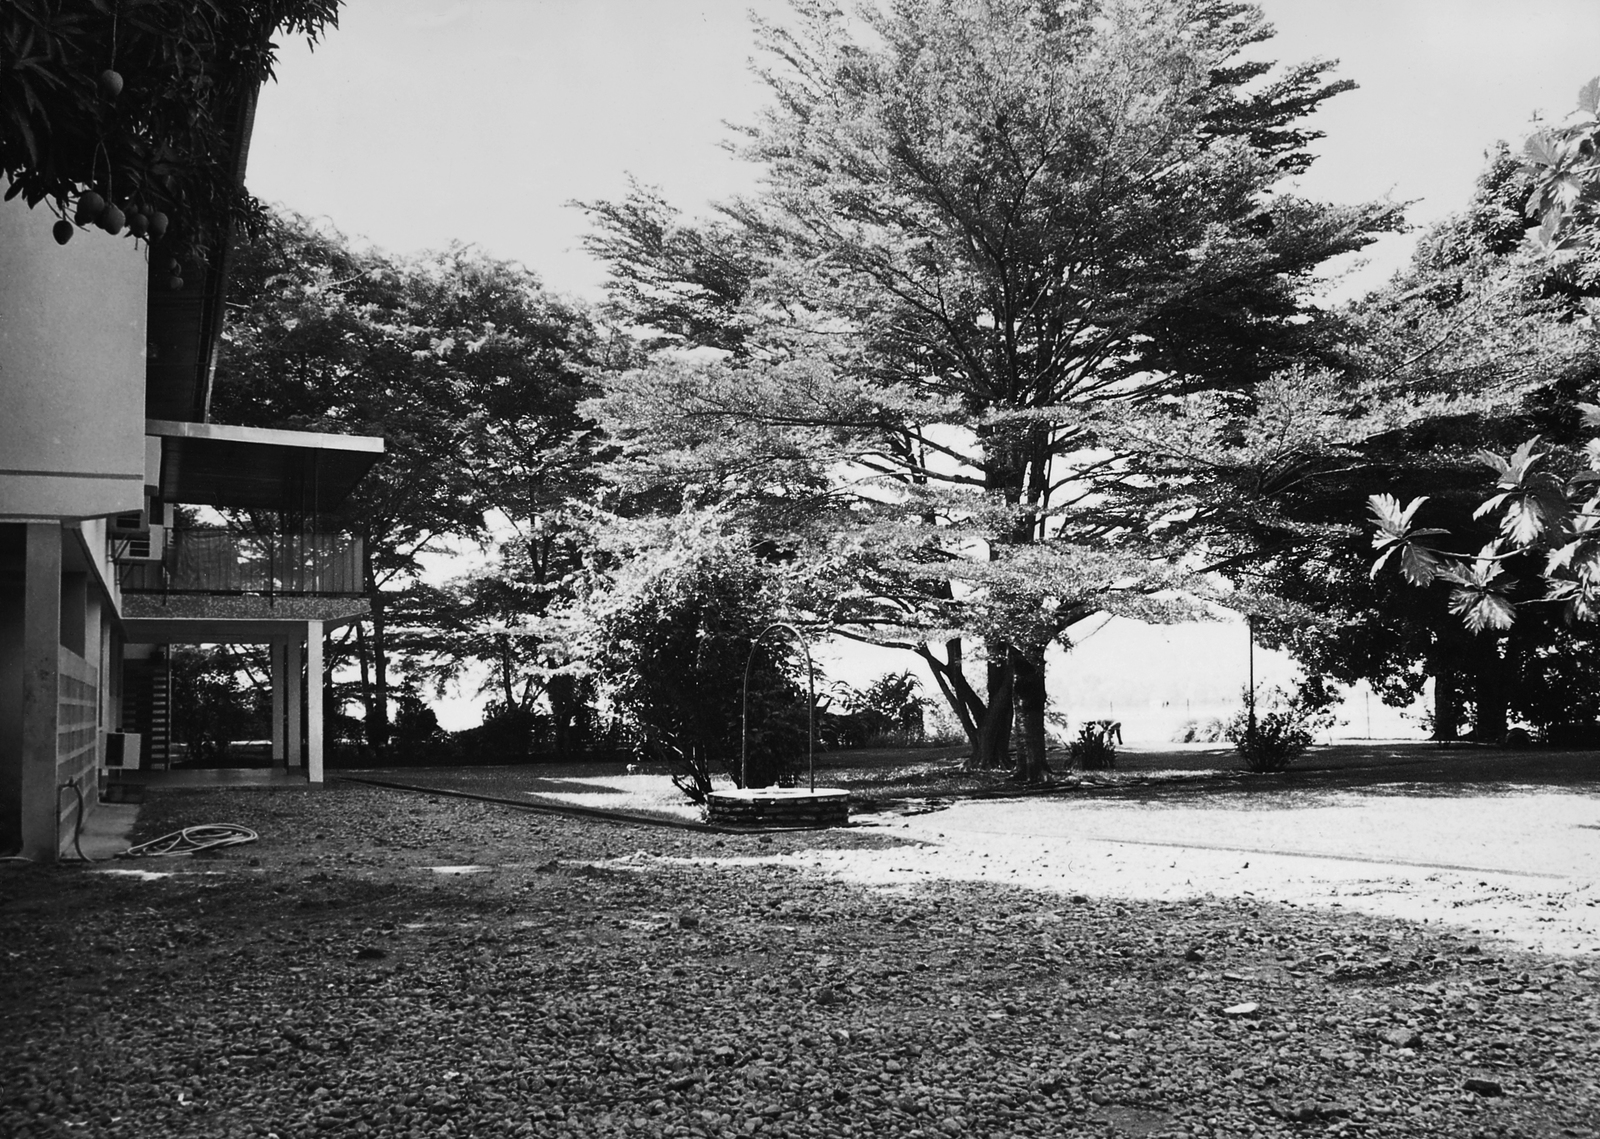 Bangui - Temporary Duty/Transient Residential Unit - 1973